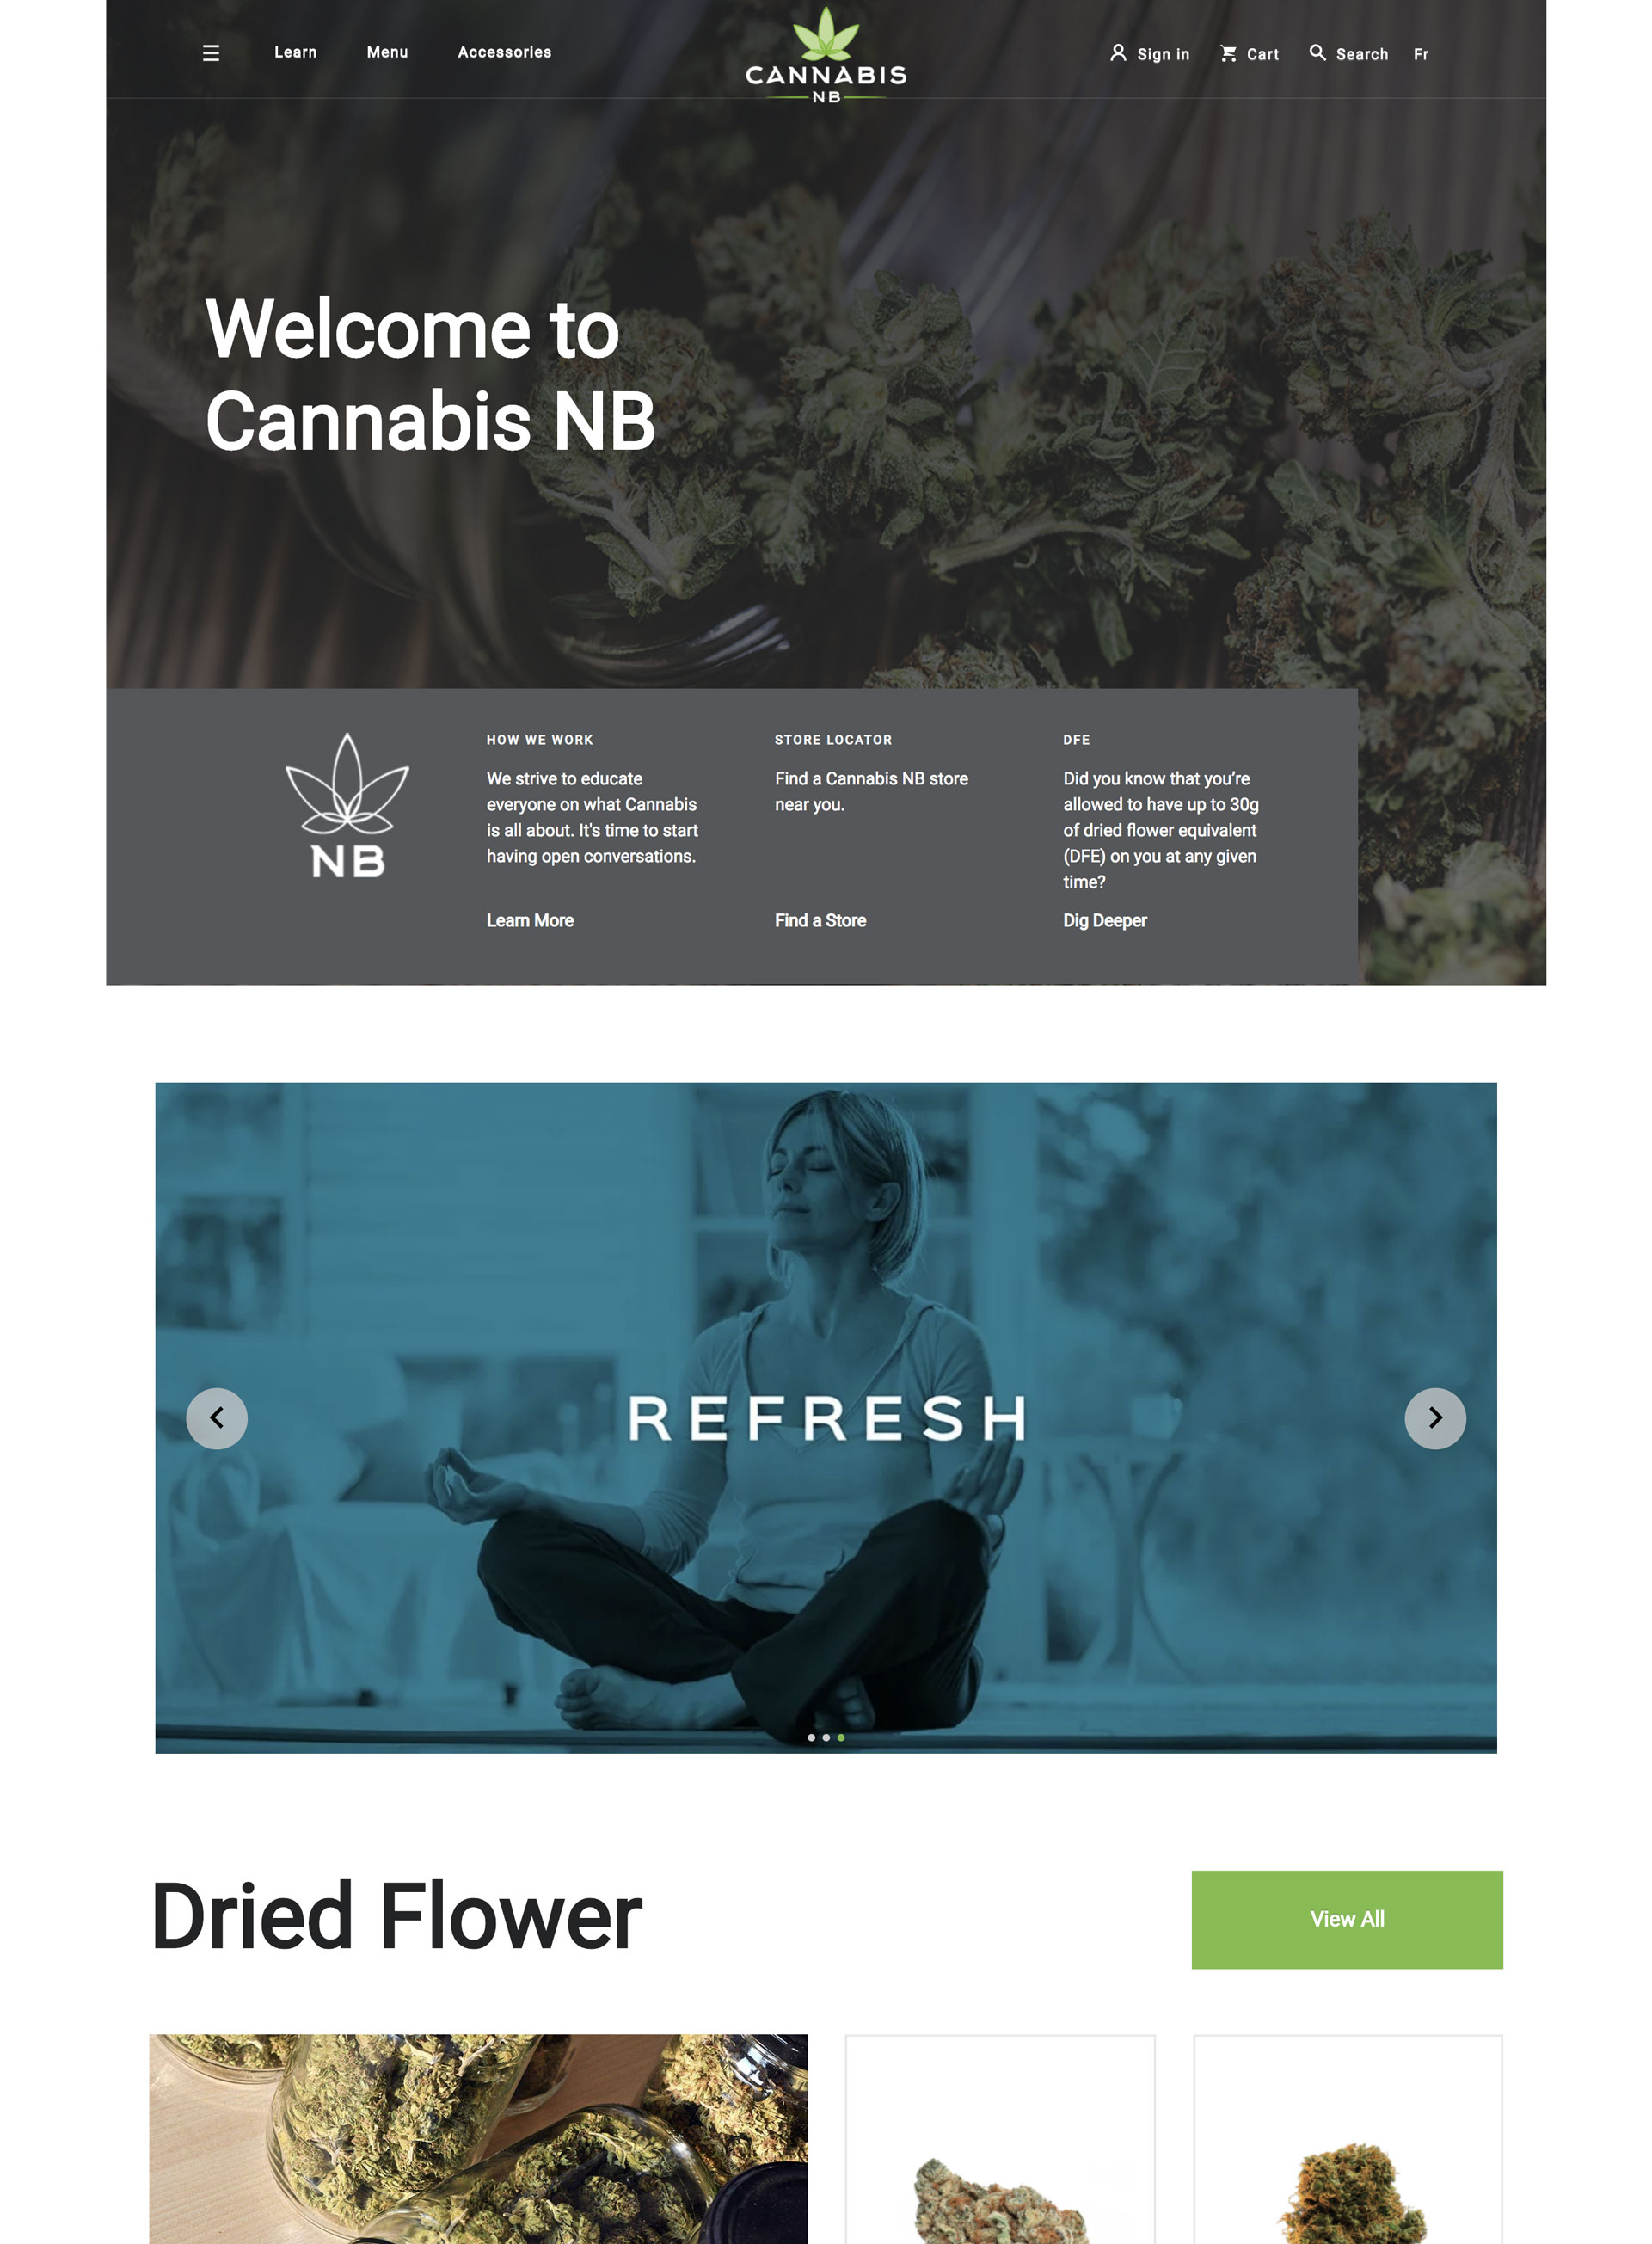 https://www.cannabis-nb.com/